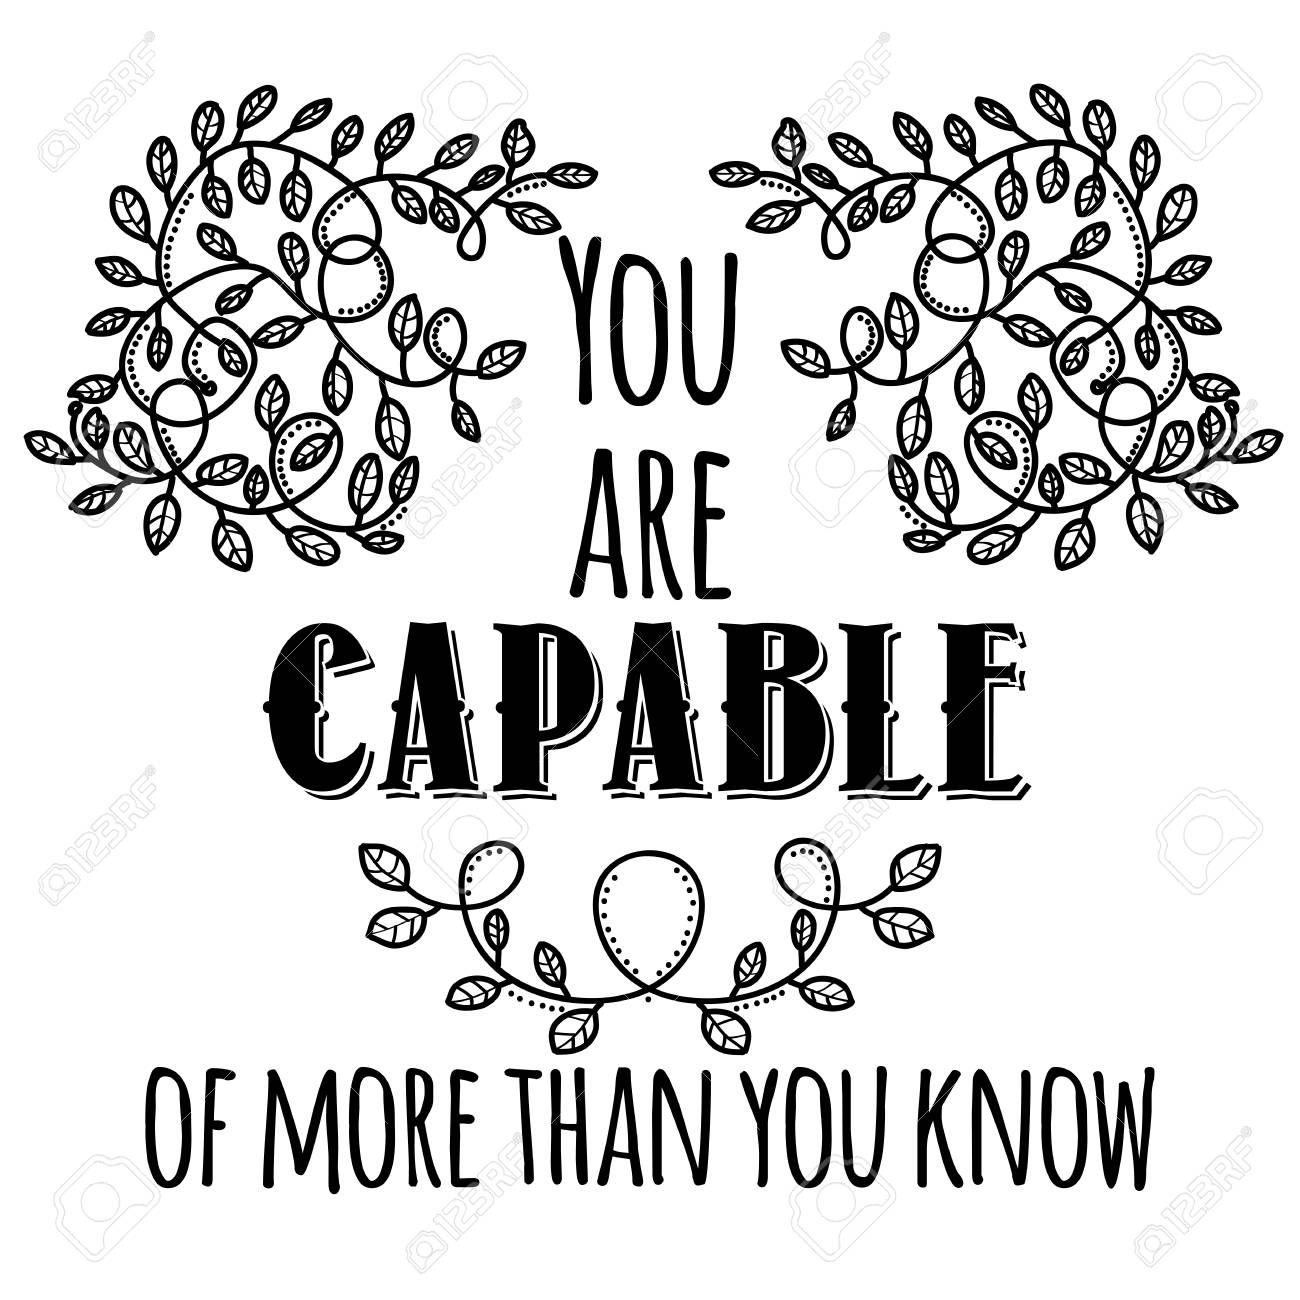 Image result for you are capable clipart